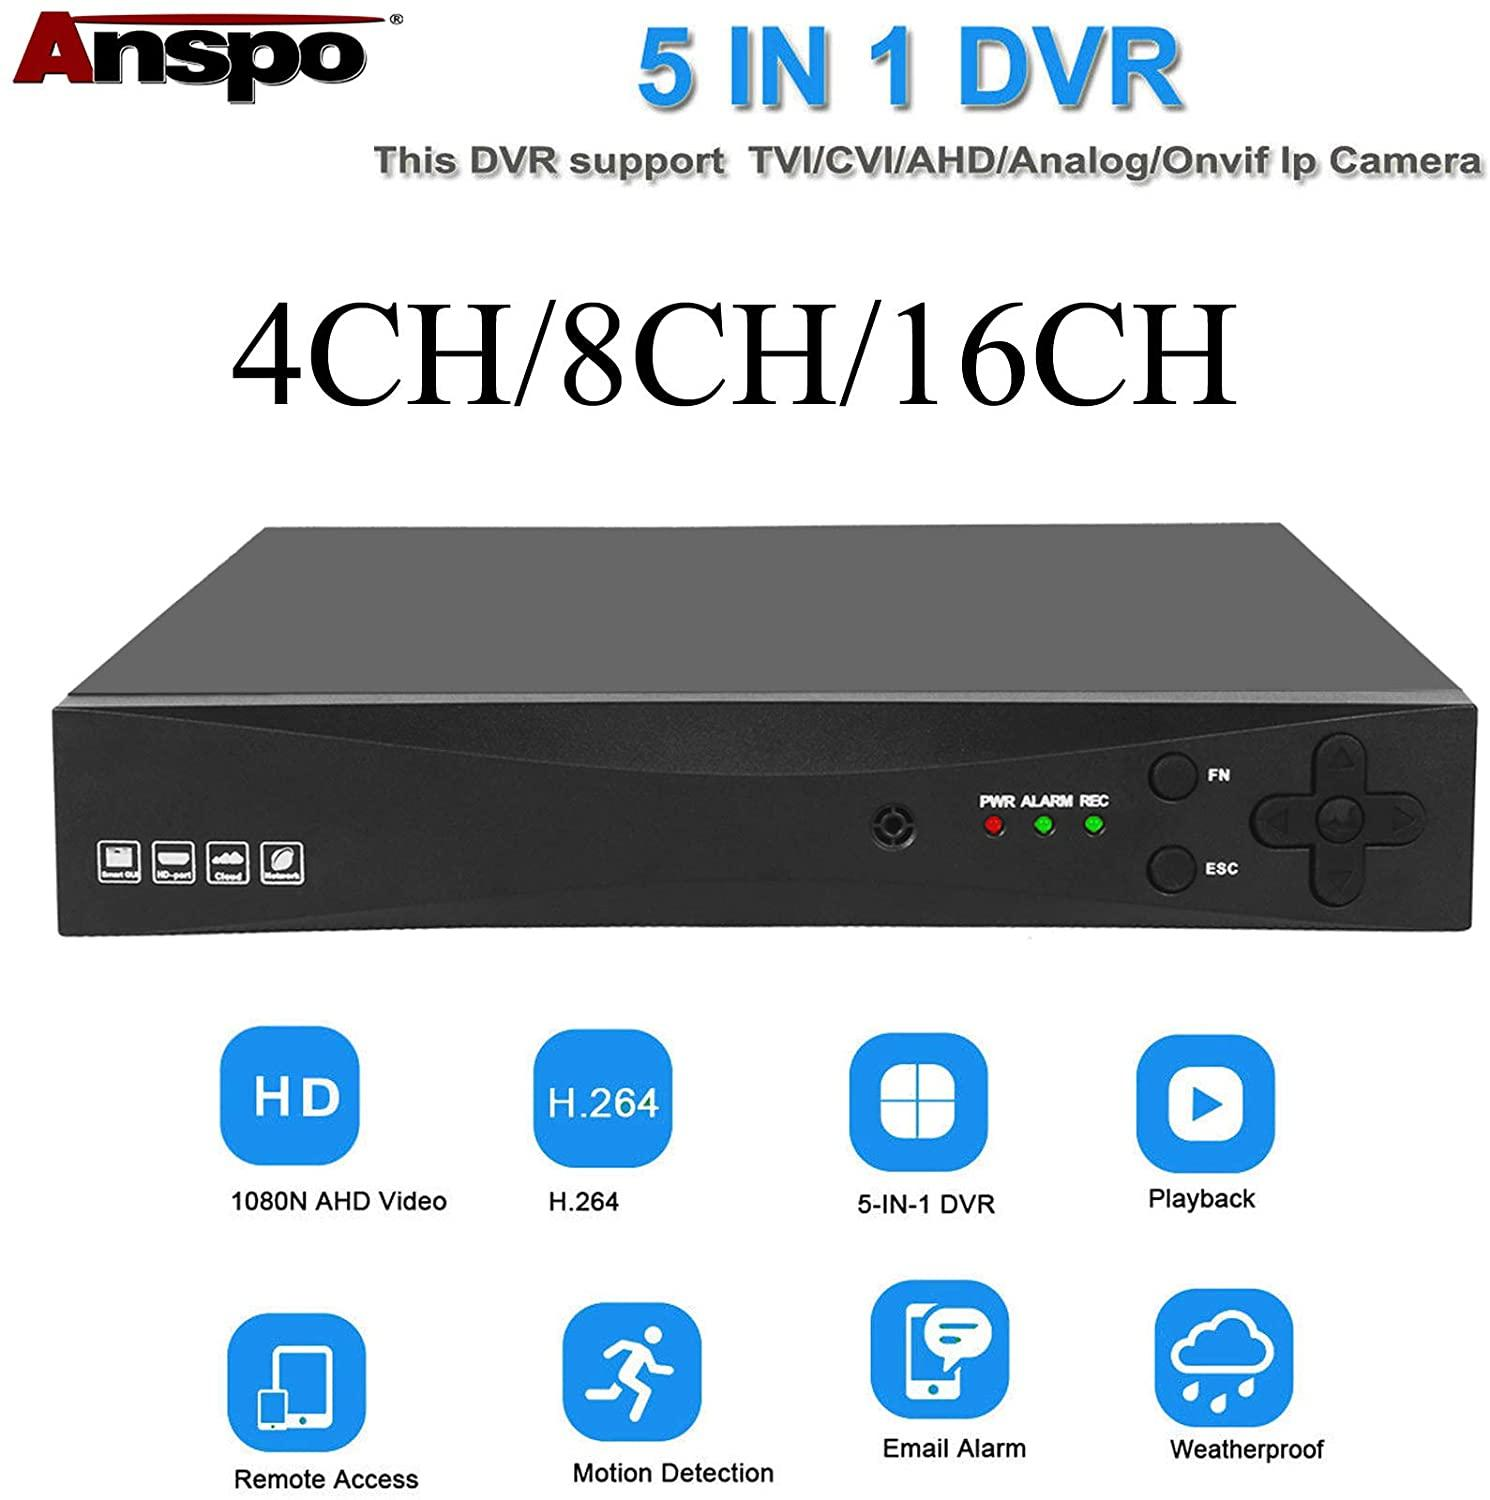 4ch color video digital color quad splitter processor with vga out for cctv security system with bnc switcher splitter 4CH 5-in-1 AHD 1080P Video Recorder CCTV Smart Security DVR HD VGA HDMI BNC